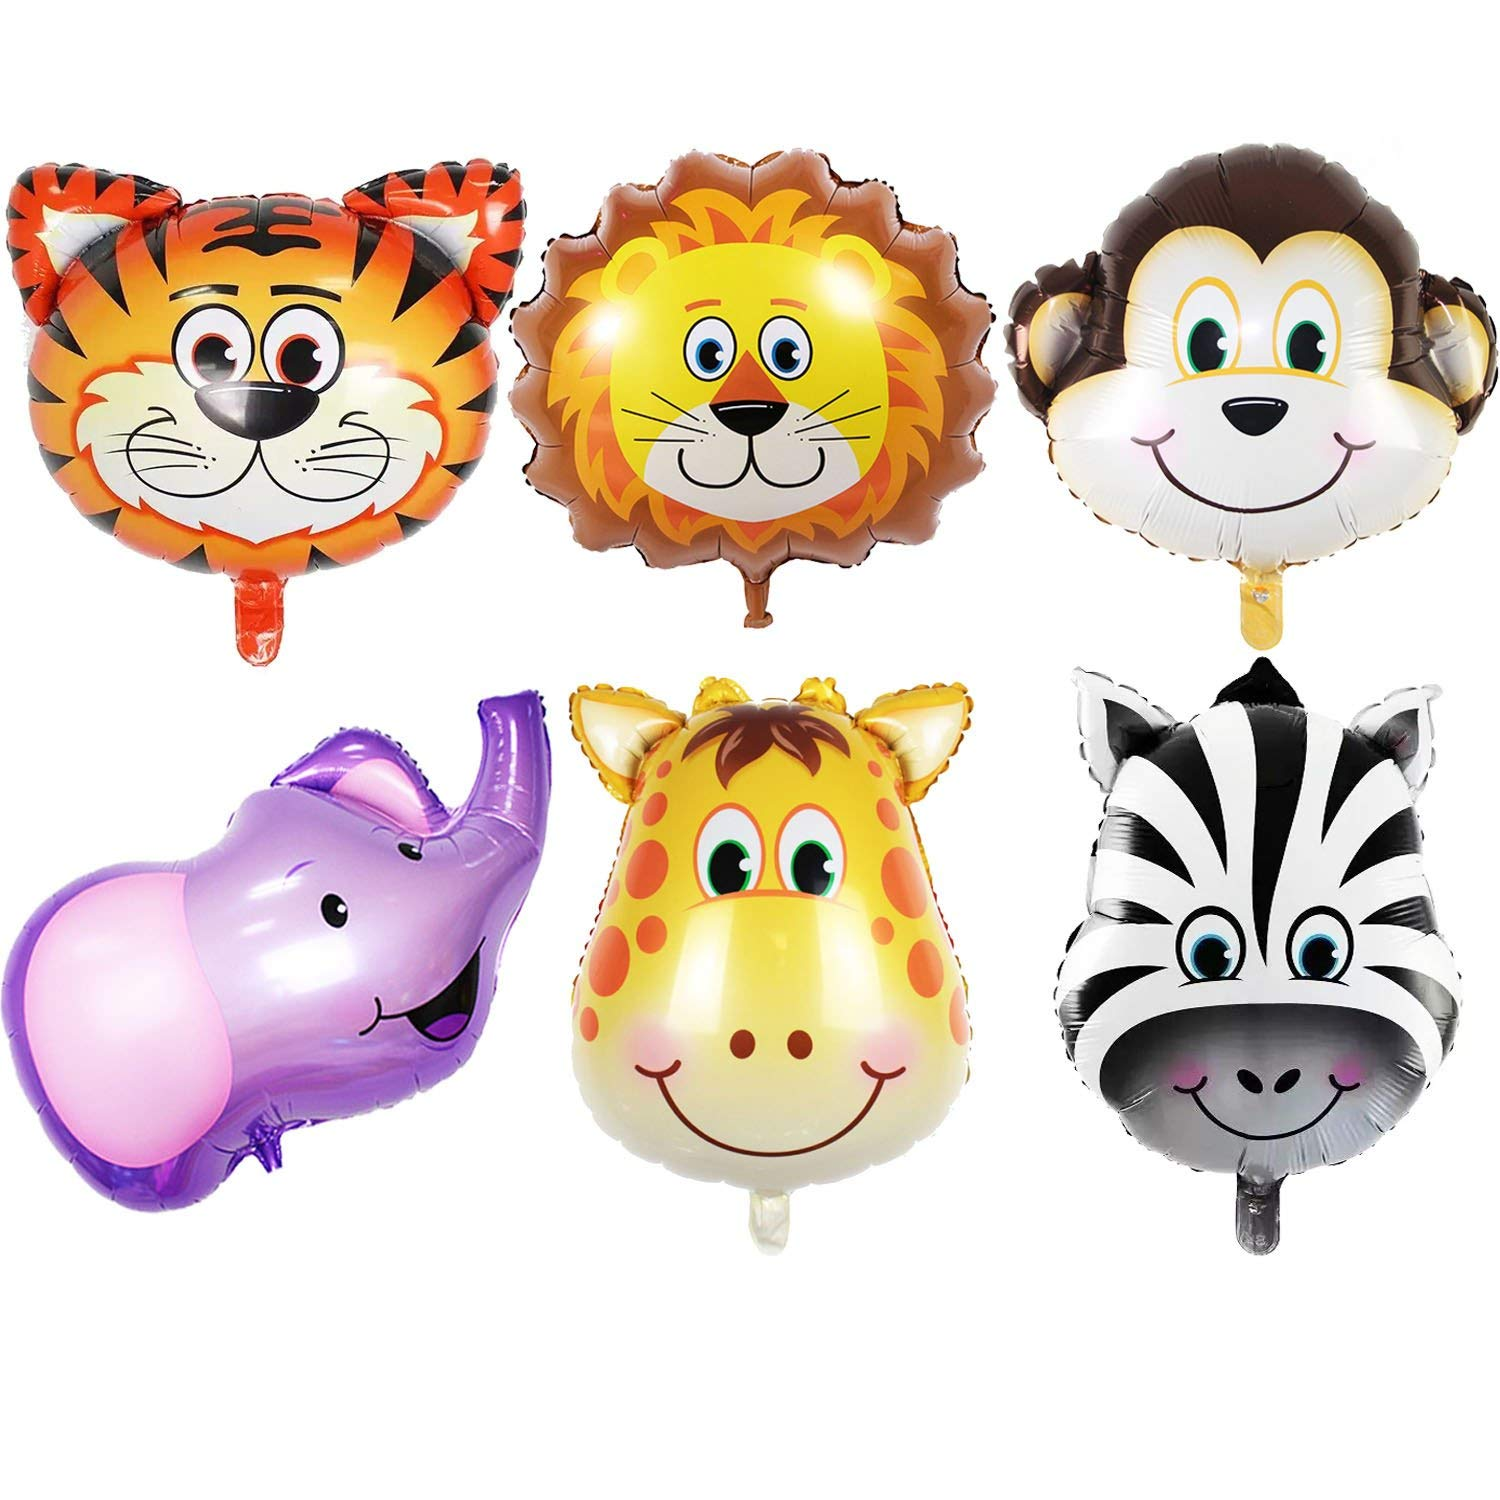 Safari Jungle Animal Balloons for Kids – 7-Pack Wild Animals Balloon Set for Birthday Party – Premium Quality Aluminum Foil – Vivid Colors and Funny Animal Shapes – Helium or Air